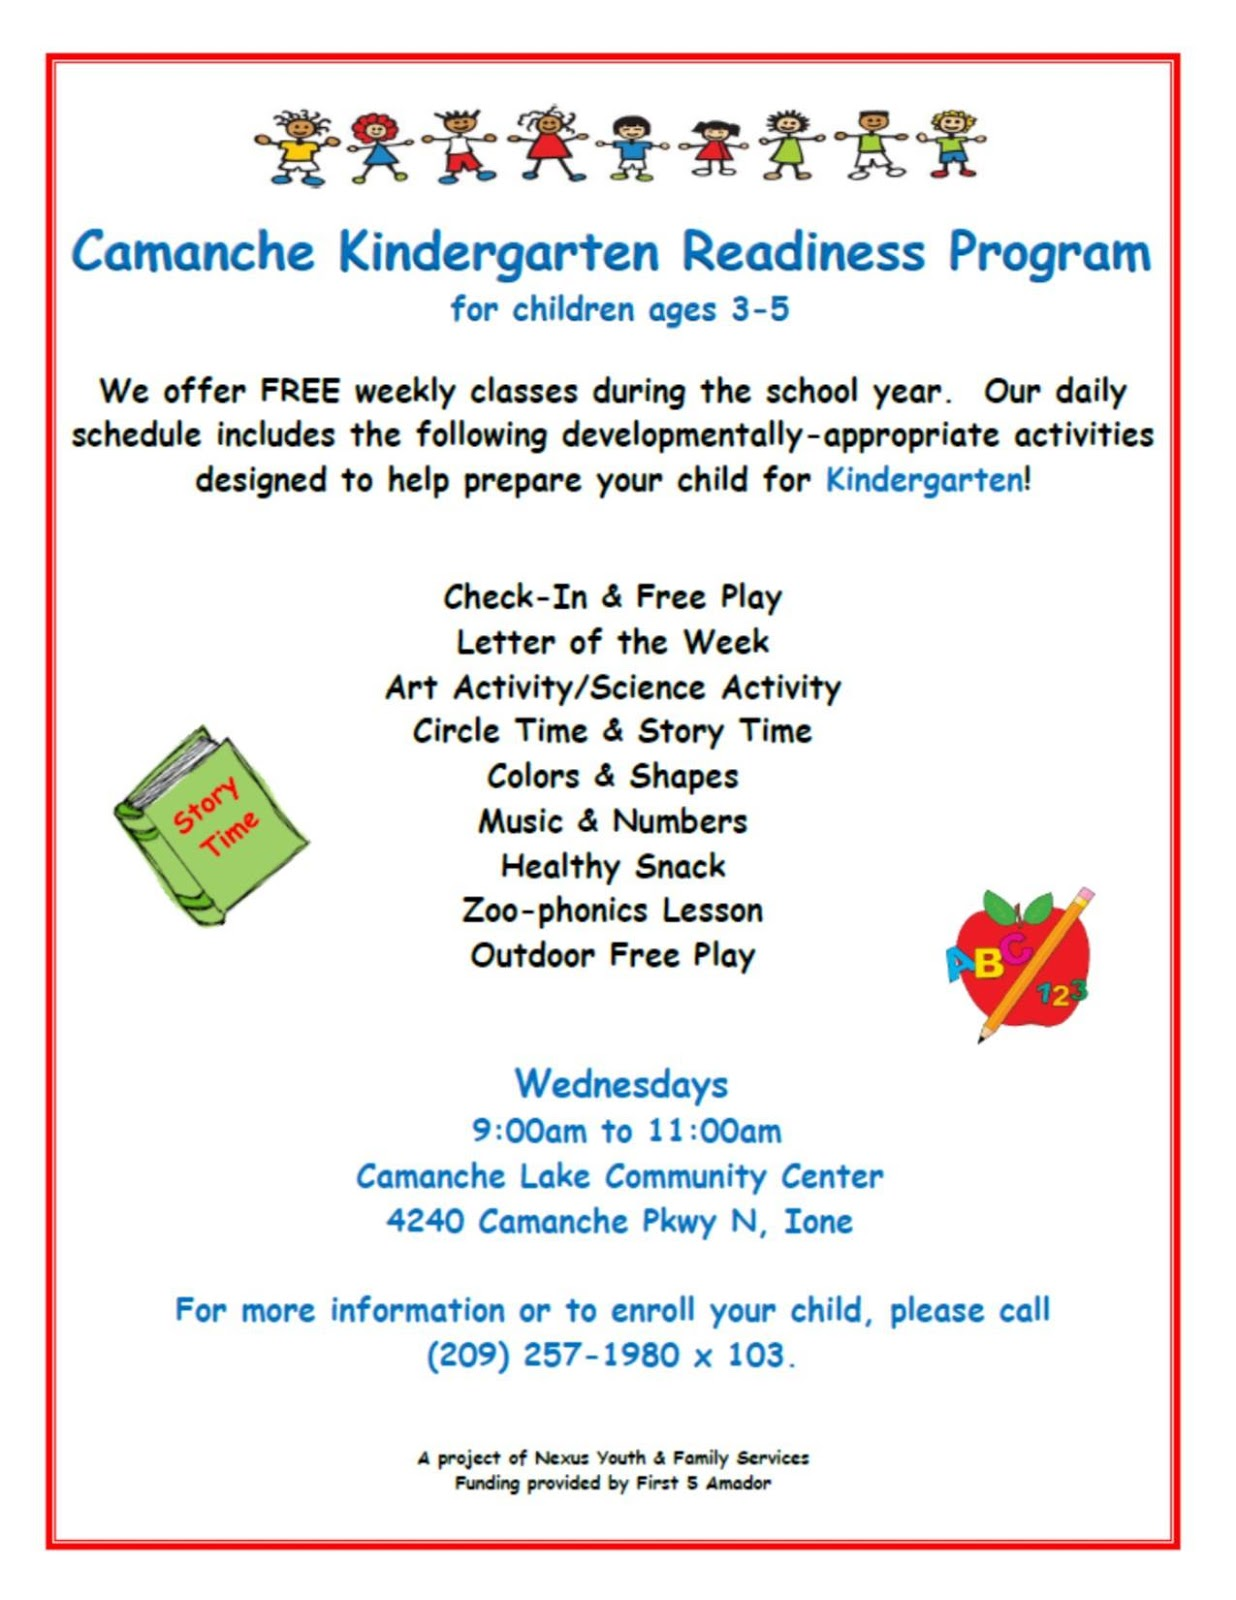 camanche kindergarten readiness program this free program is open to all children ages 3 5 regardless of income weekly classes are offered during the